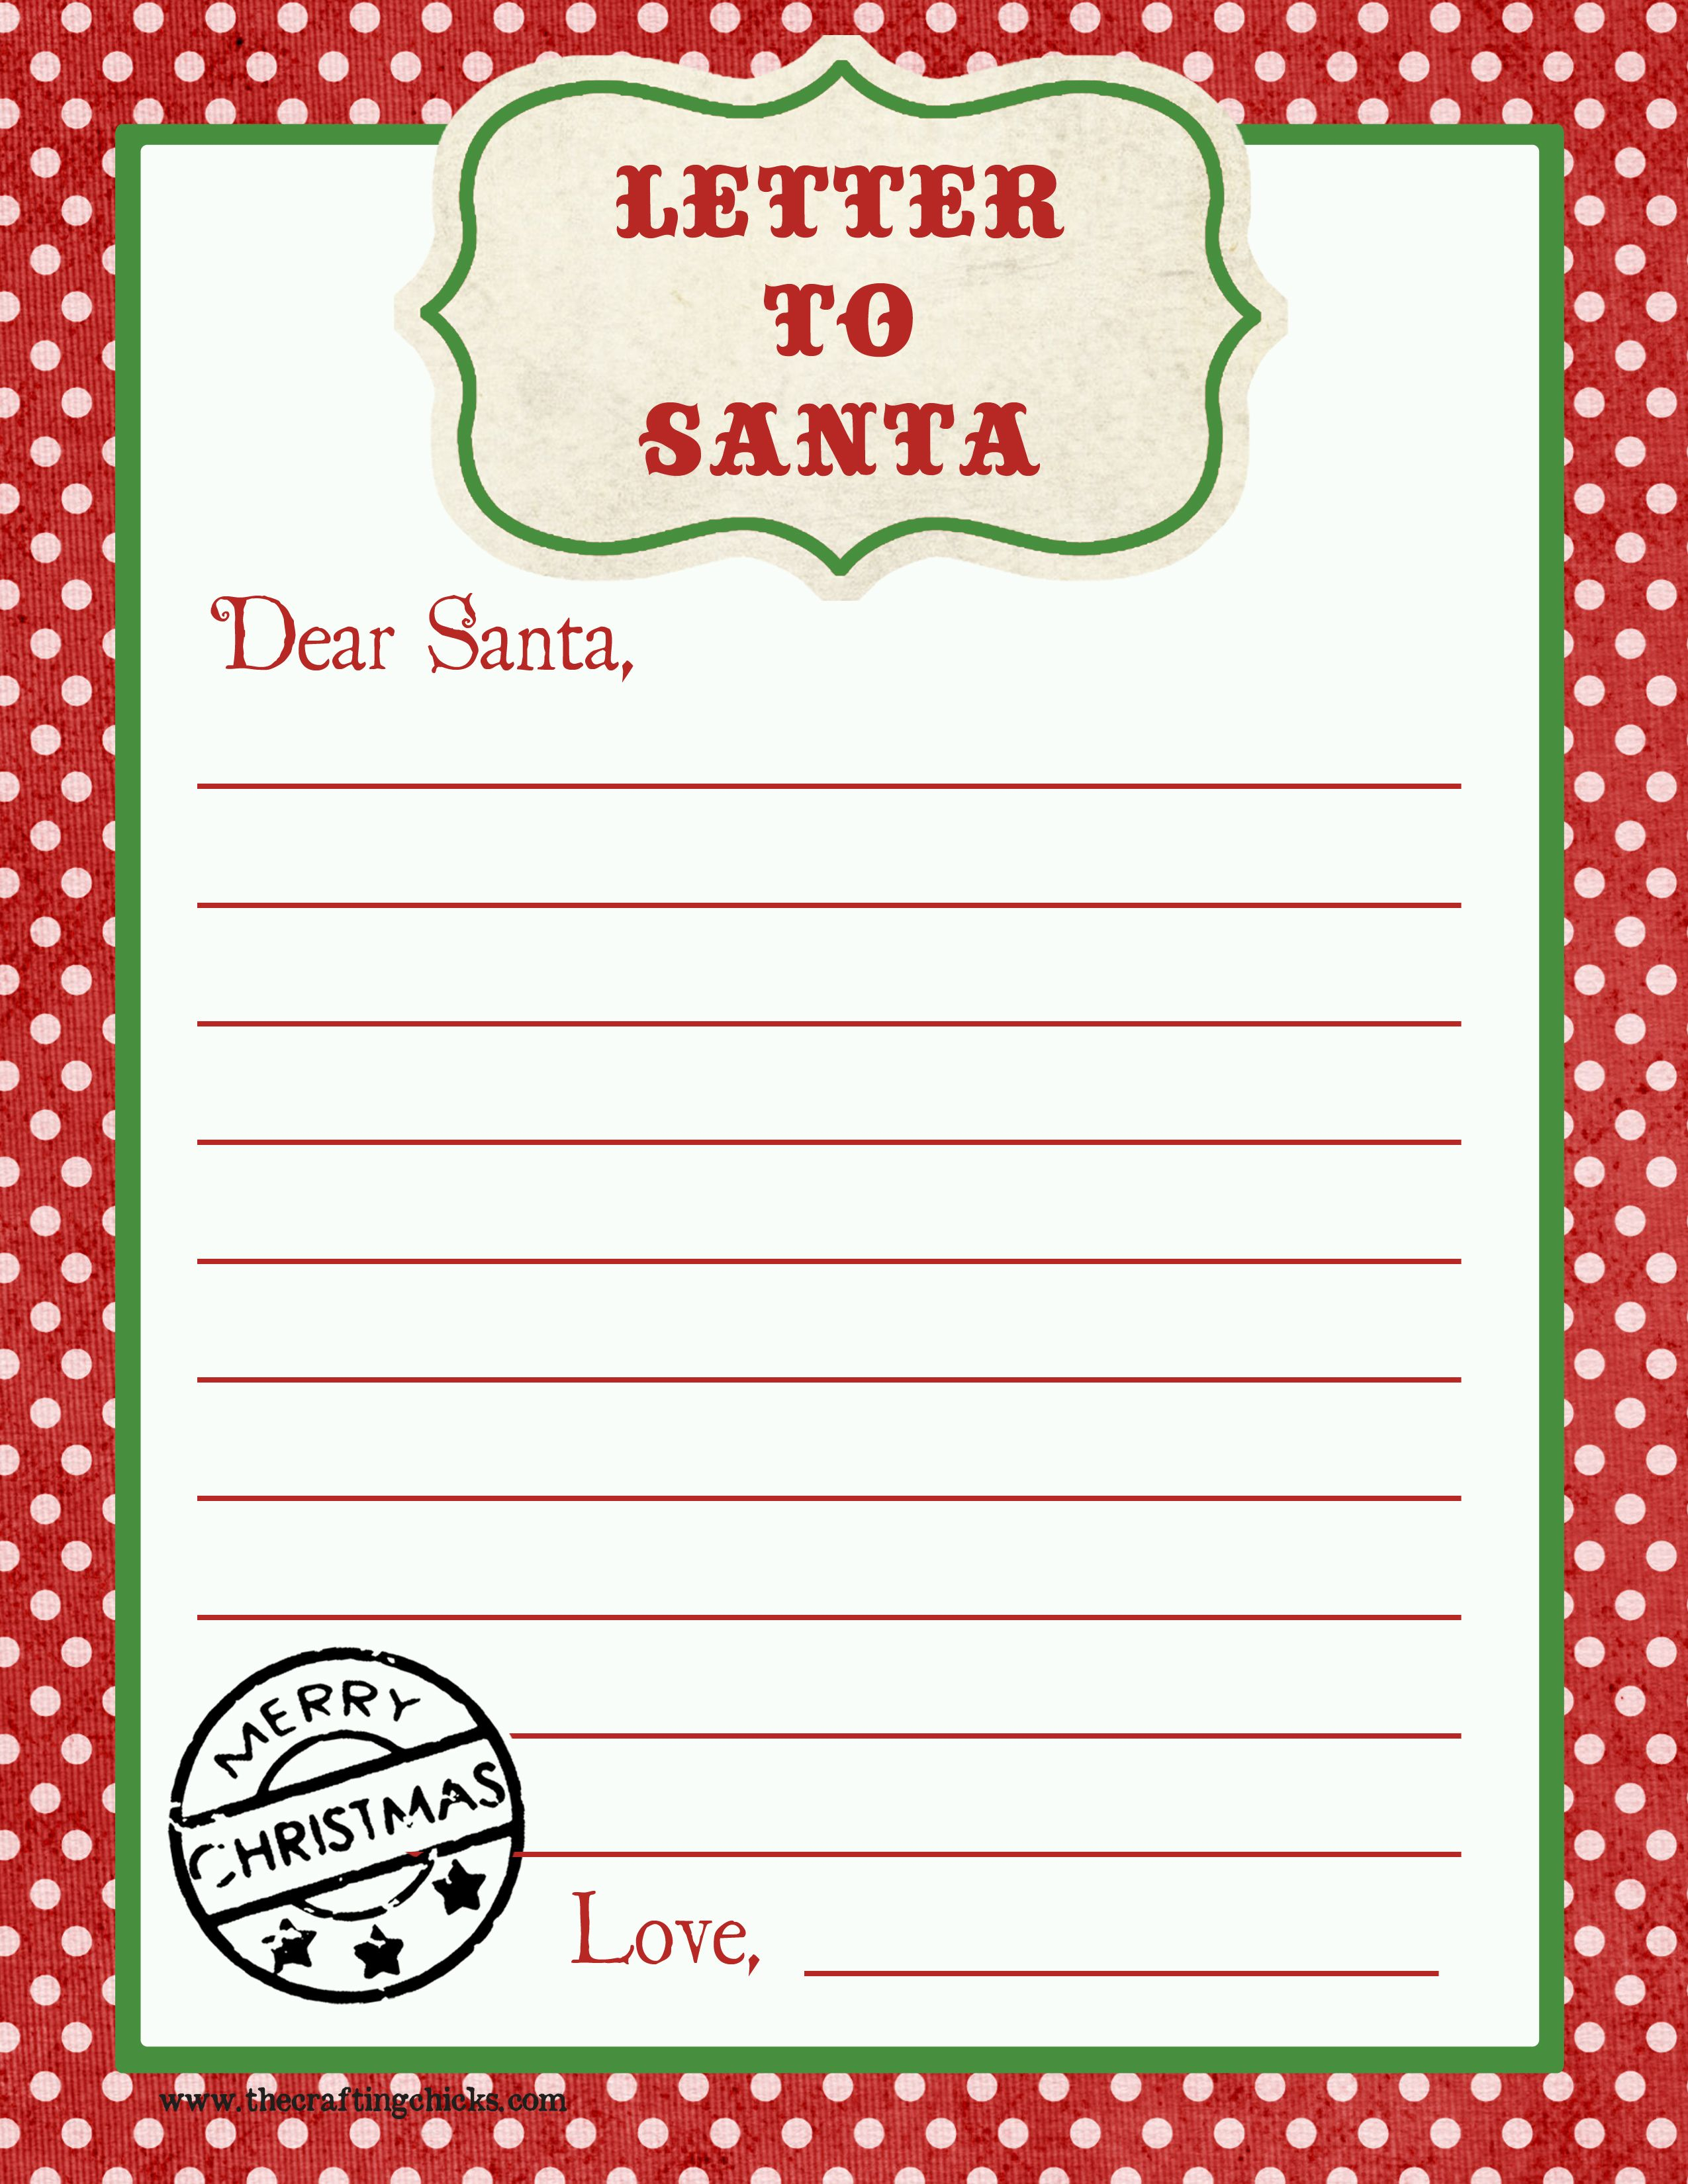 Christmas Letter From Santa Template - Letter to Santa Free Printable Download